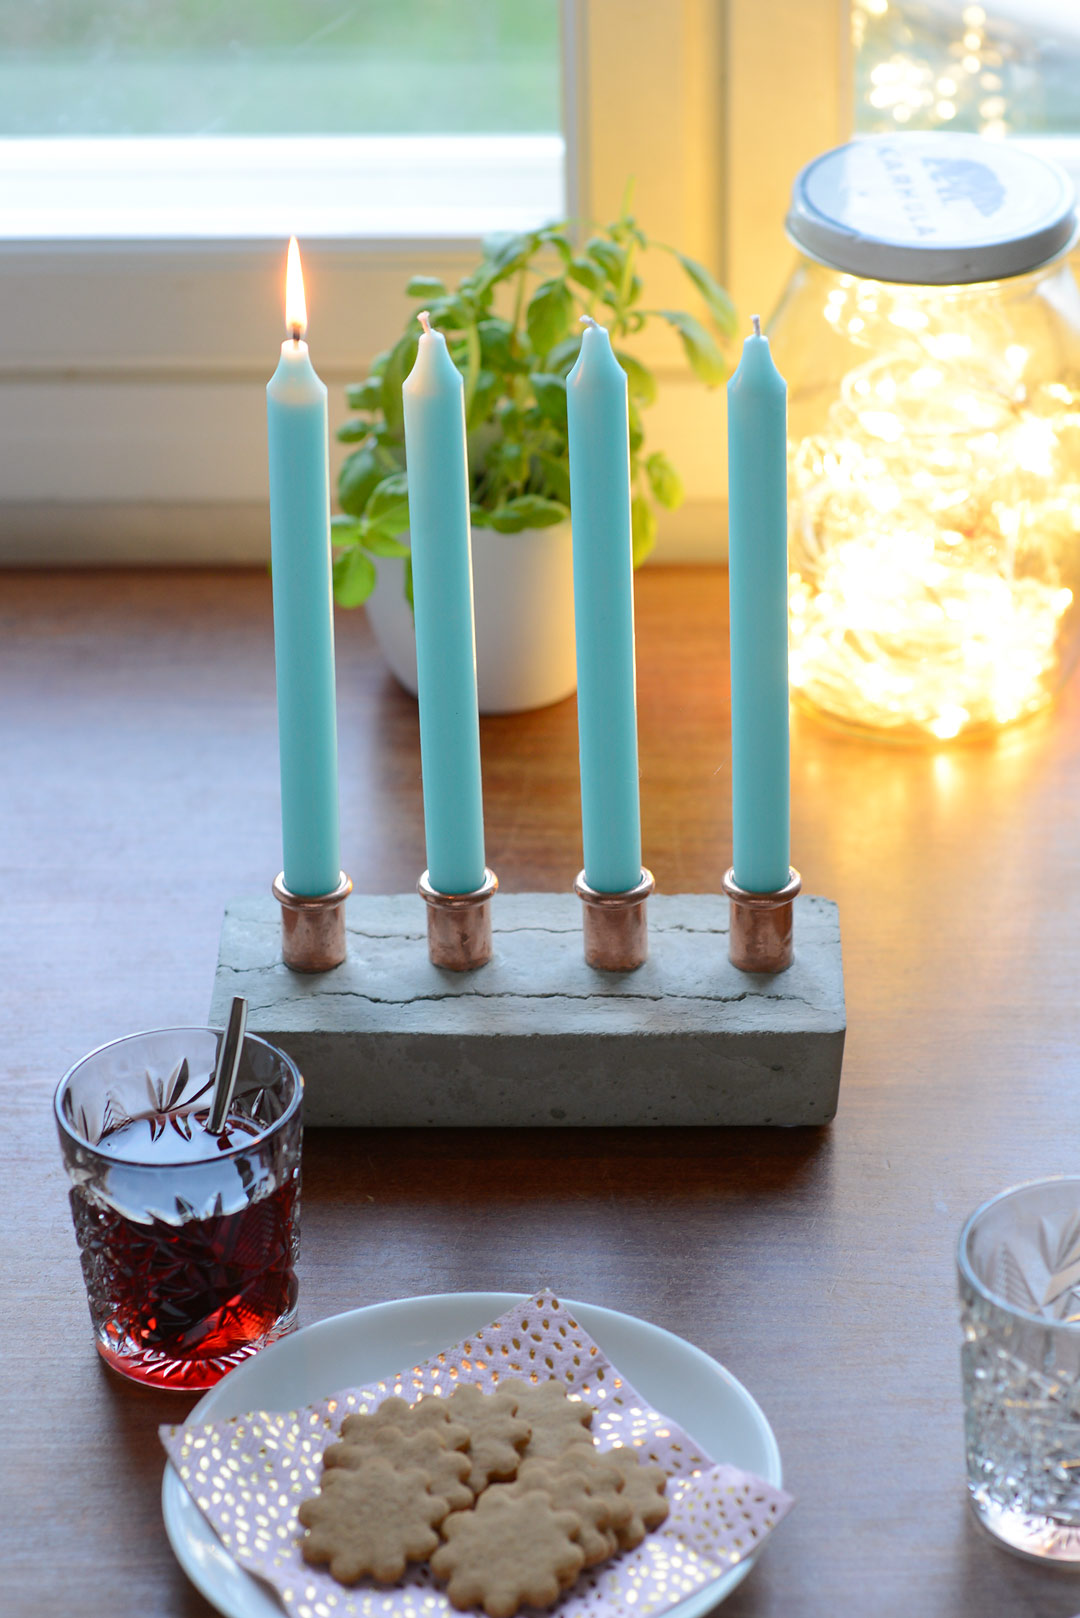 DIY candle holder for advent